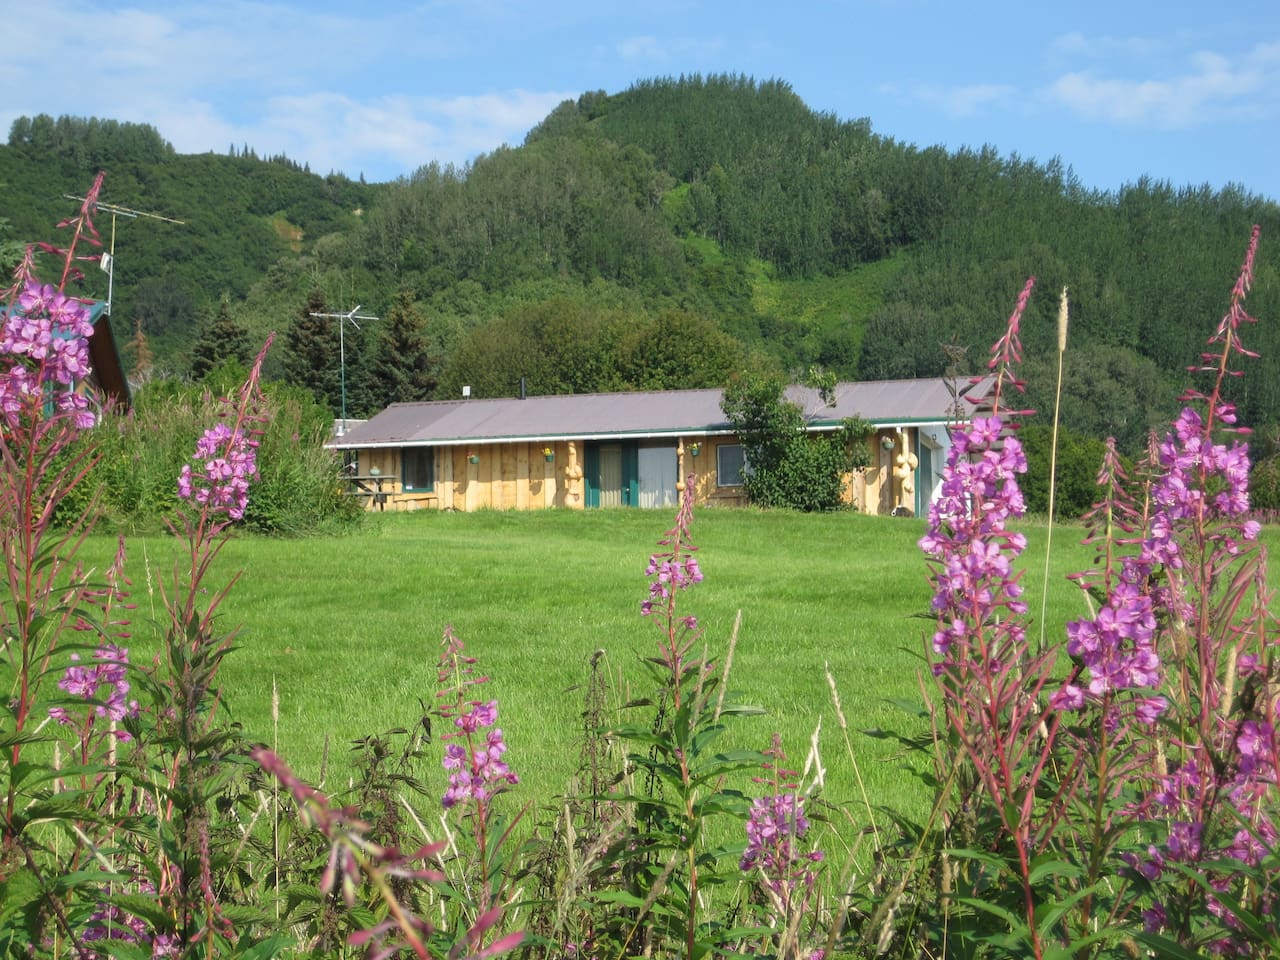 Fireweed in front of cabin with lawn- sandhill cranes land here